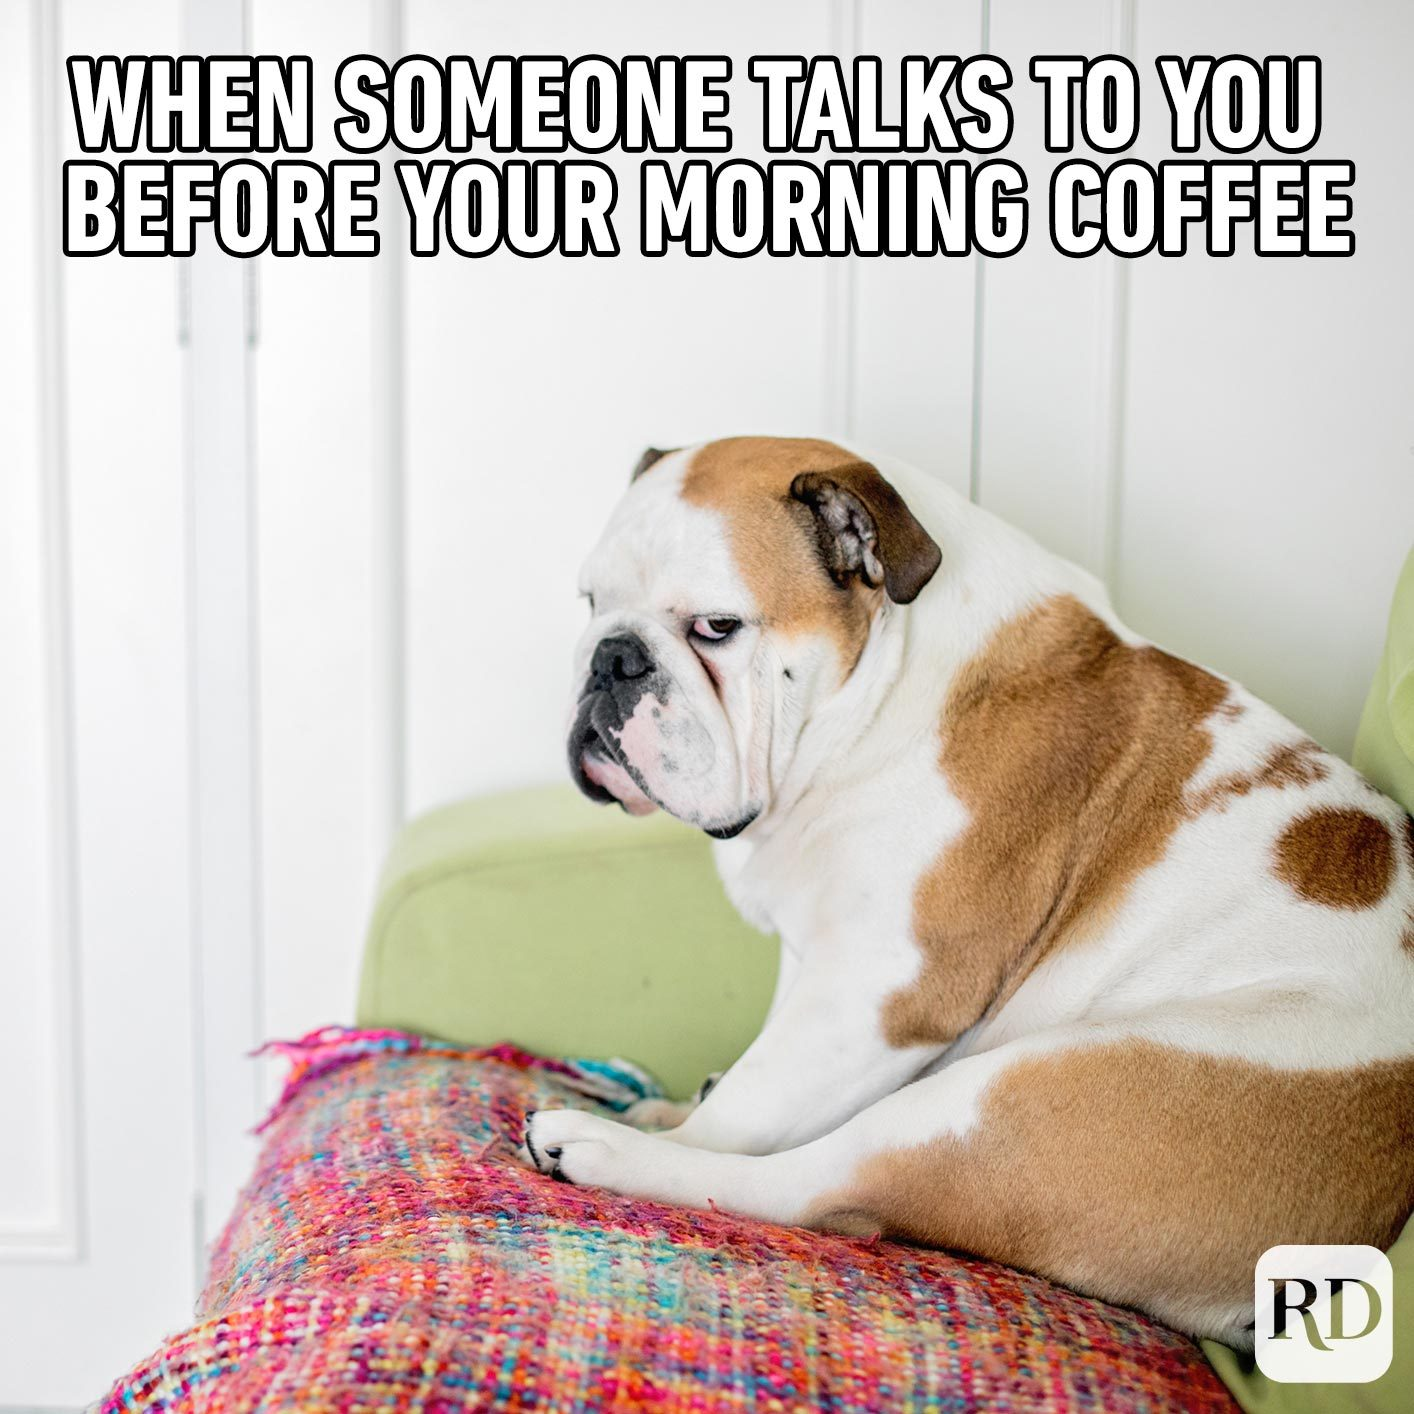 Dog glaring at camera. Meme text: When someone talks to you before your morning coffee